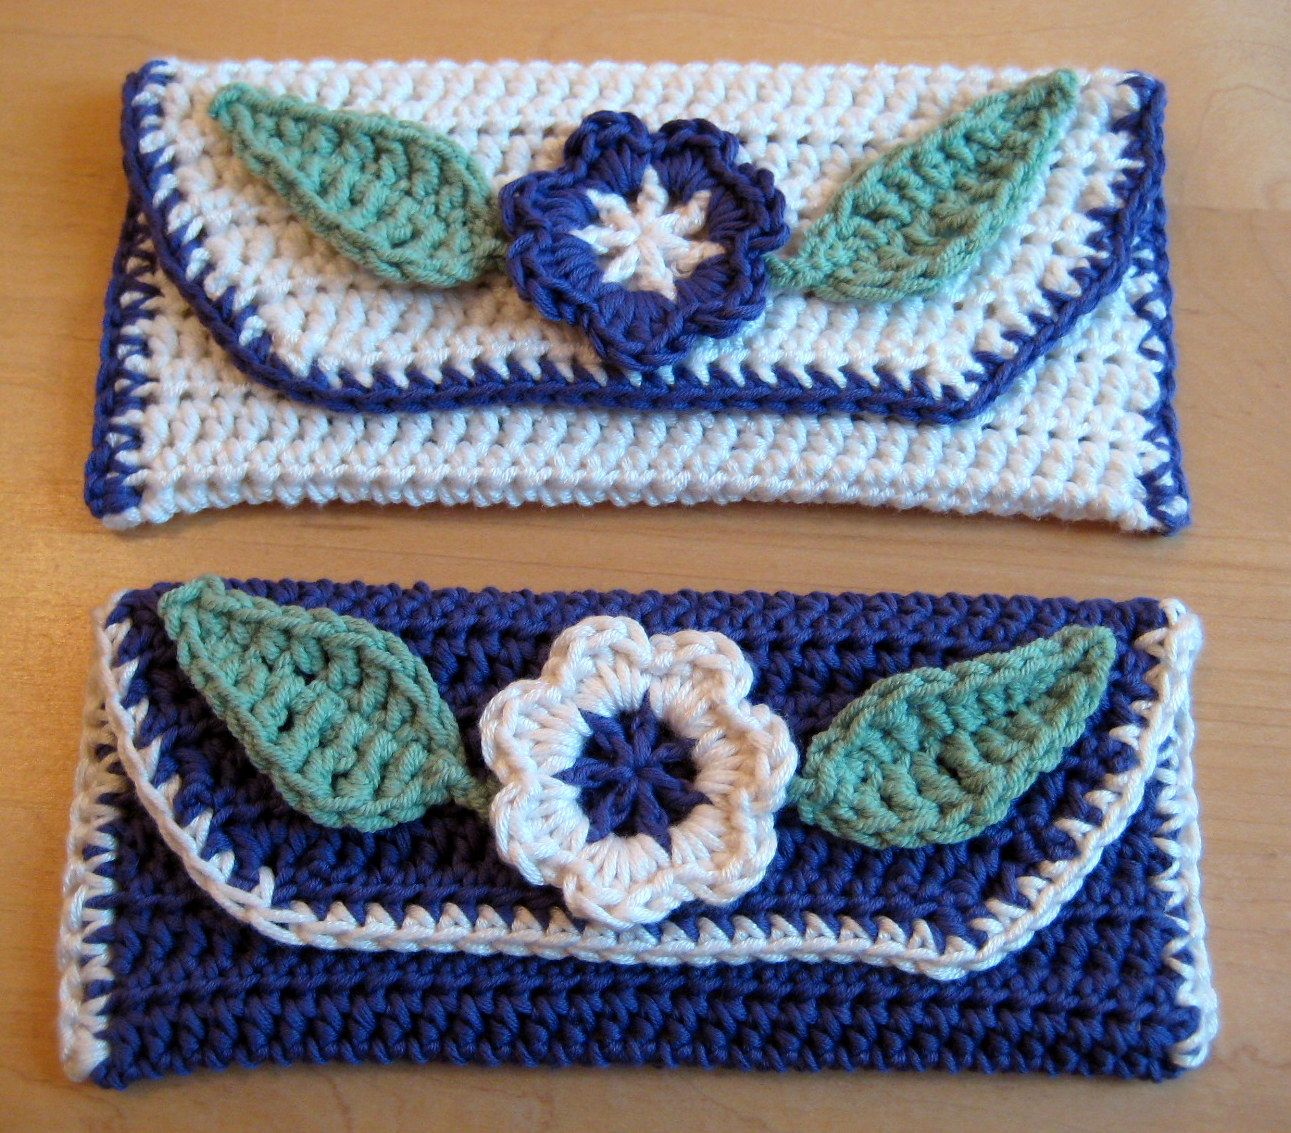 Crochet Clutch Bag & Purse Free Patterns Instructions